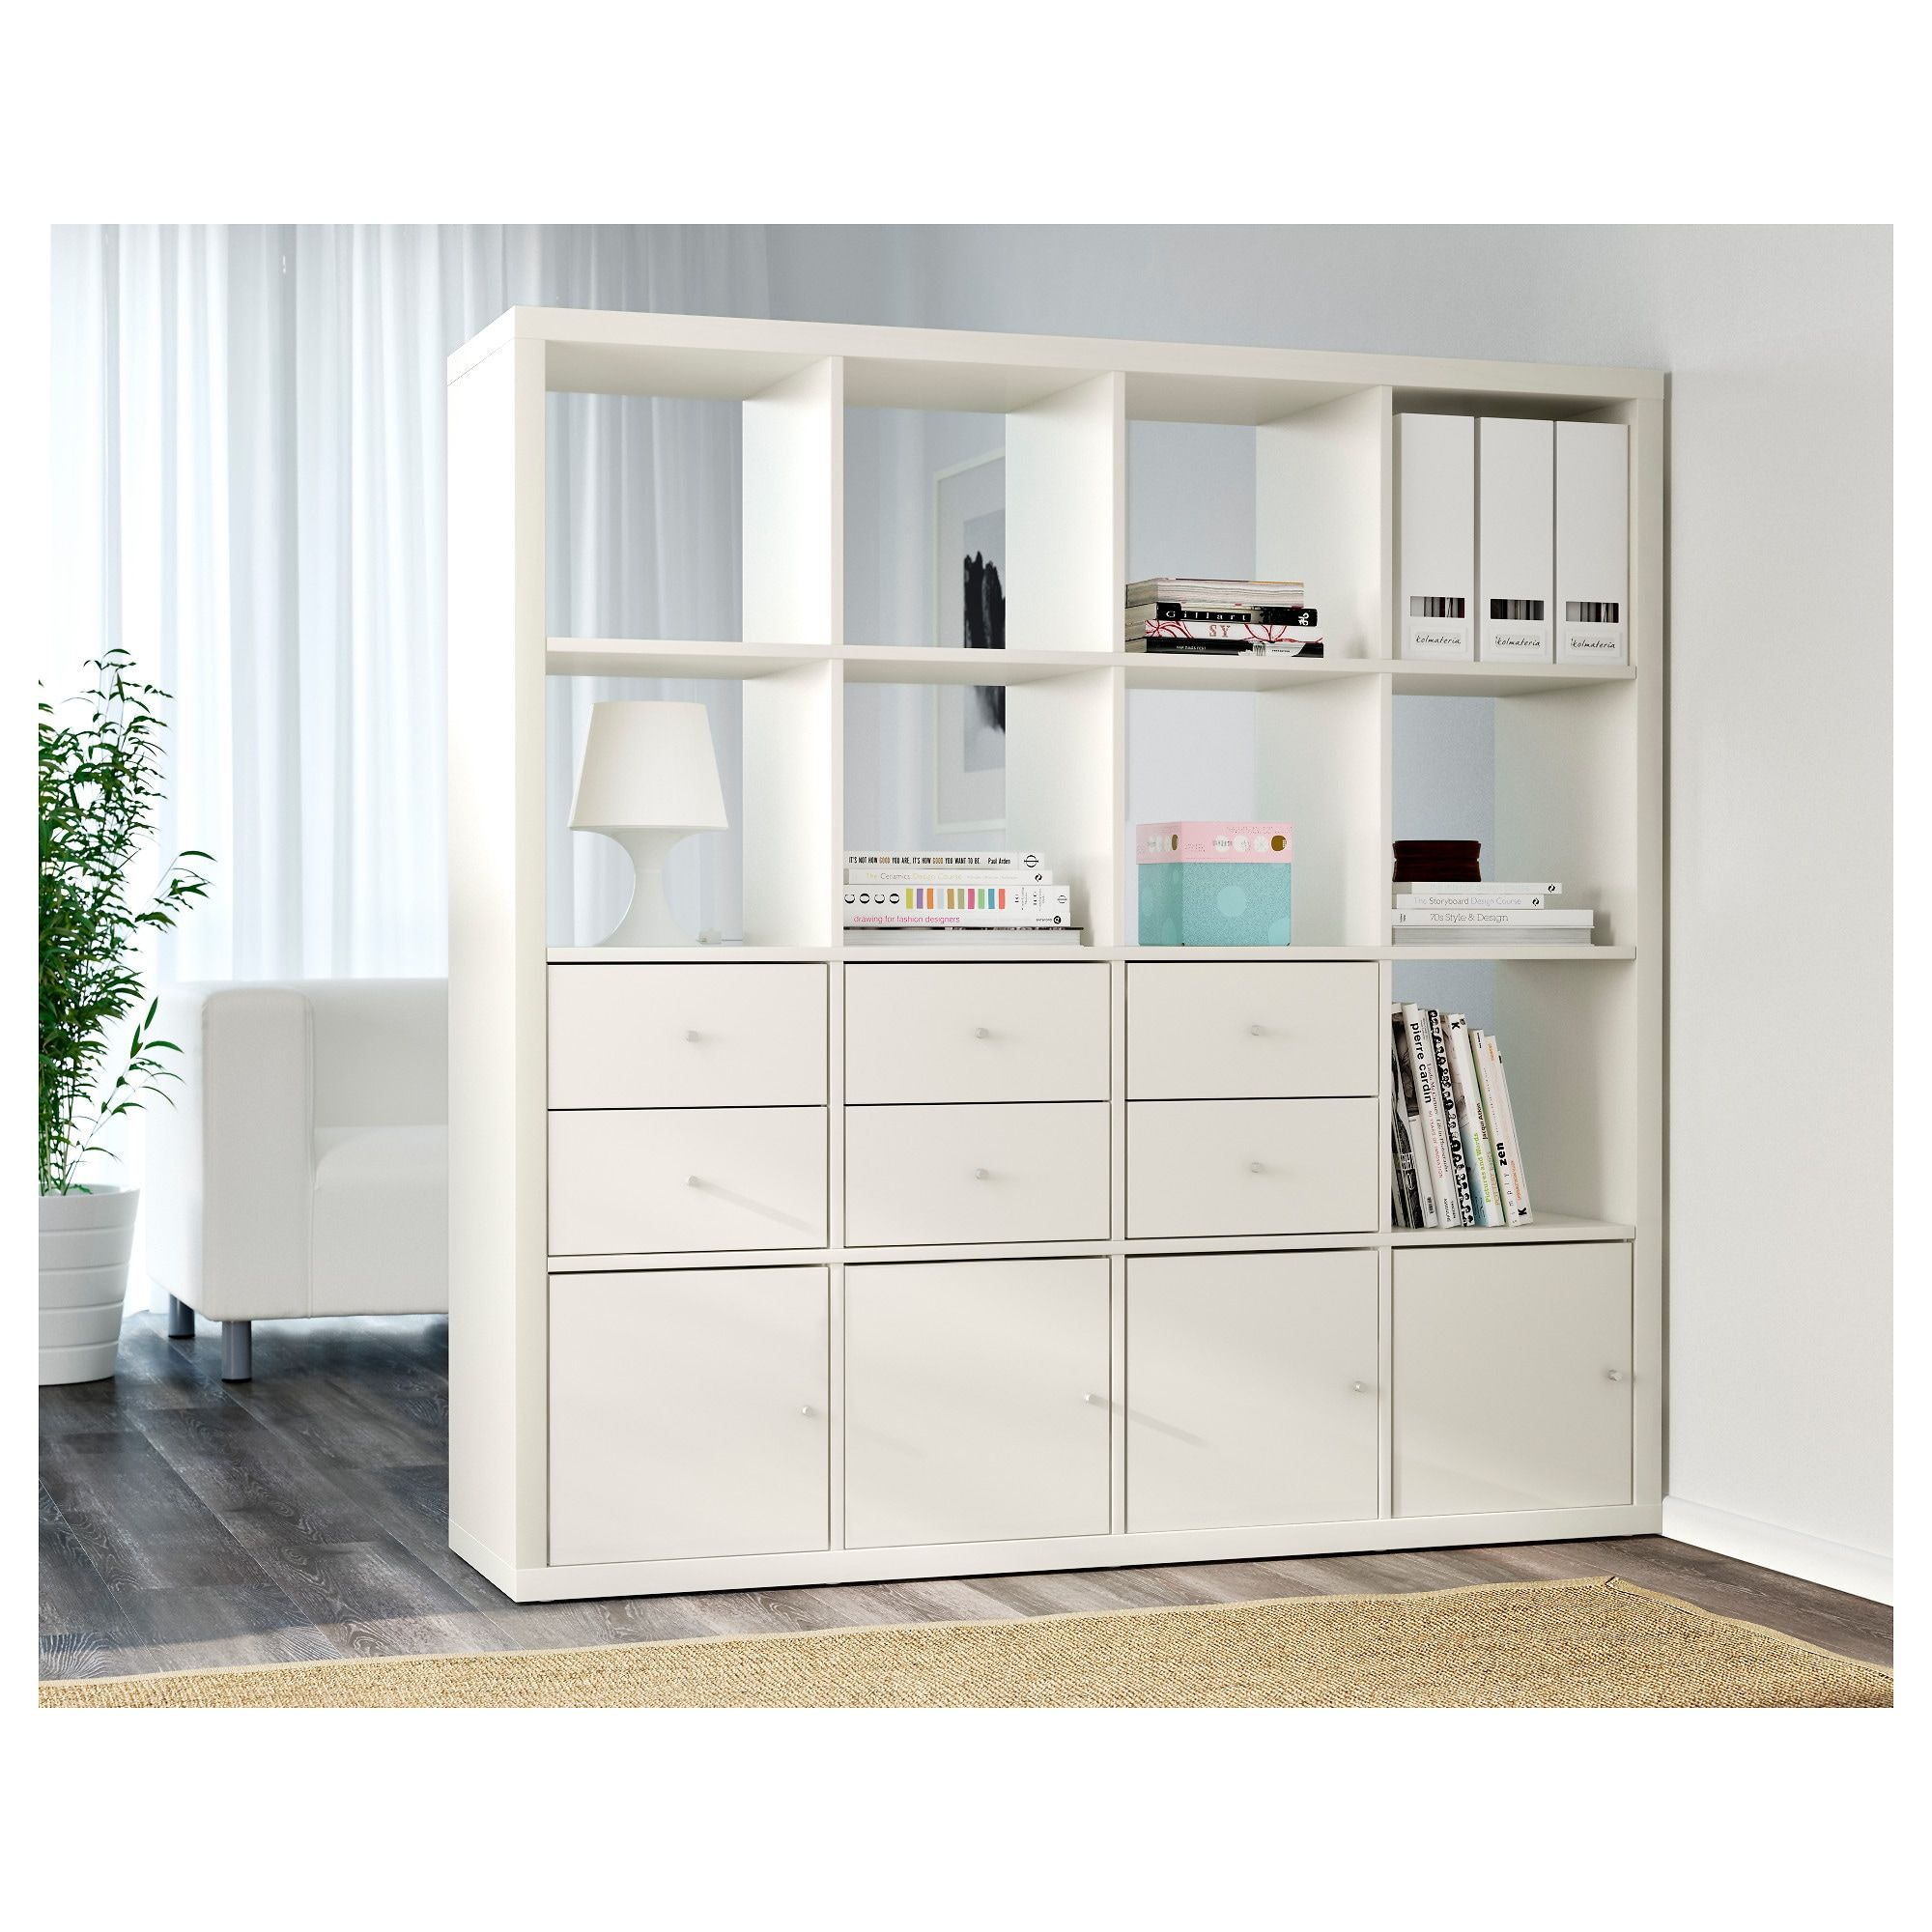 Kallax Open Kast Wit 147x147 Cm Ikea In 2020 Ikea Kallax Shelf Unit Kallax Shelving Unit Ikea Kallax Shelving